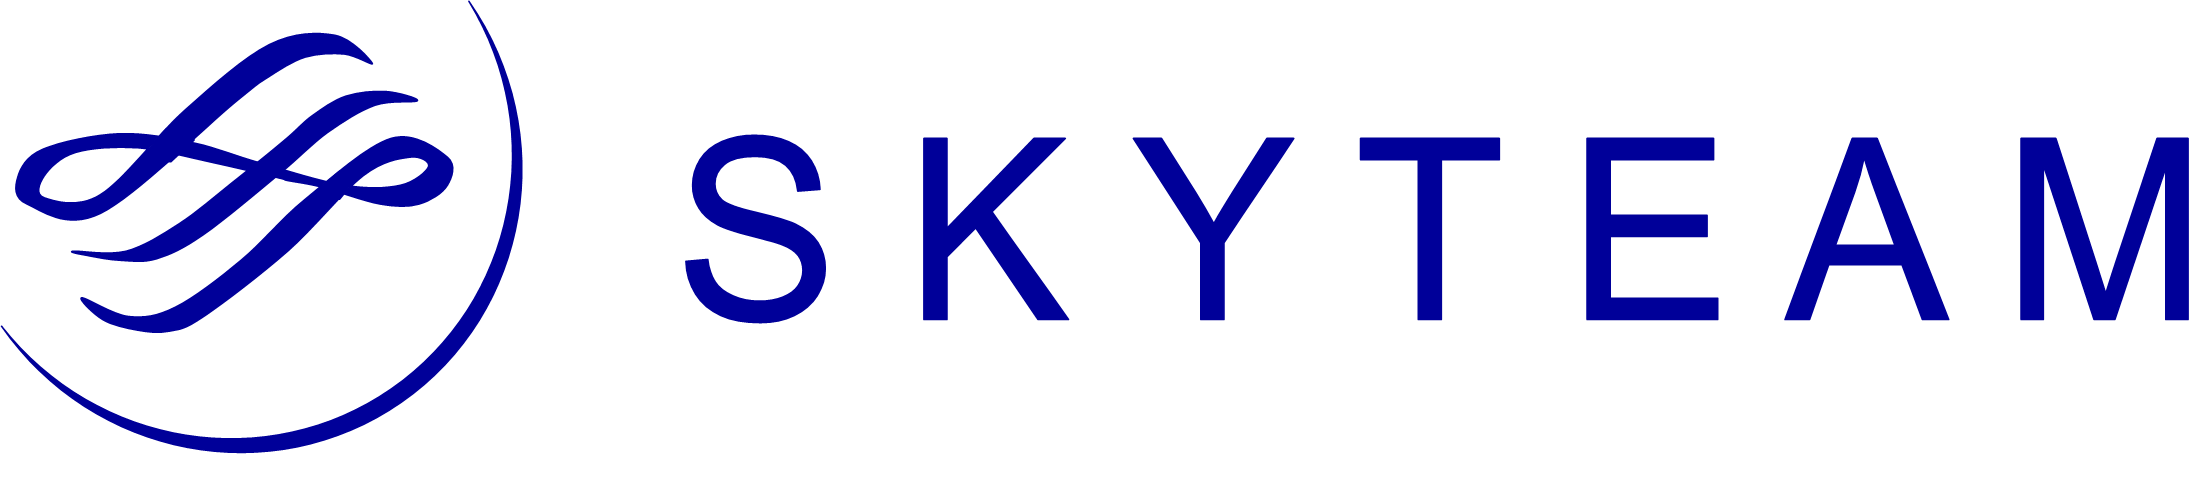 Description Skyteam Alliance Logo.png